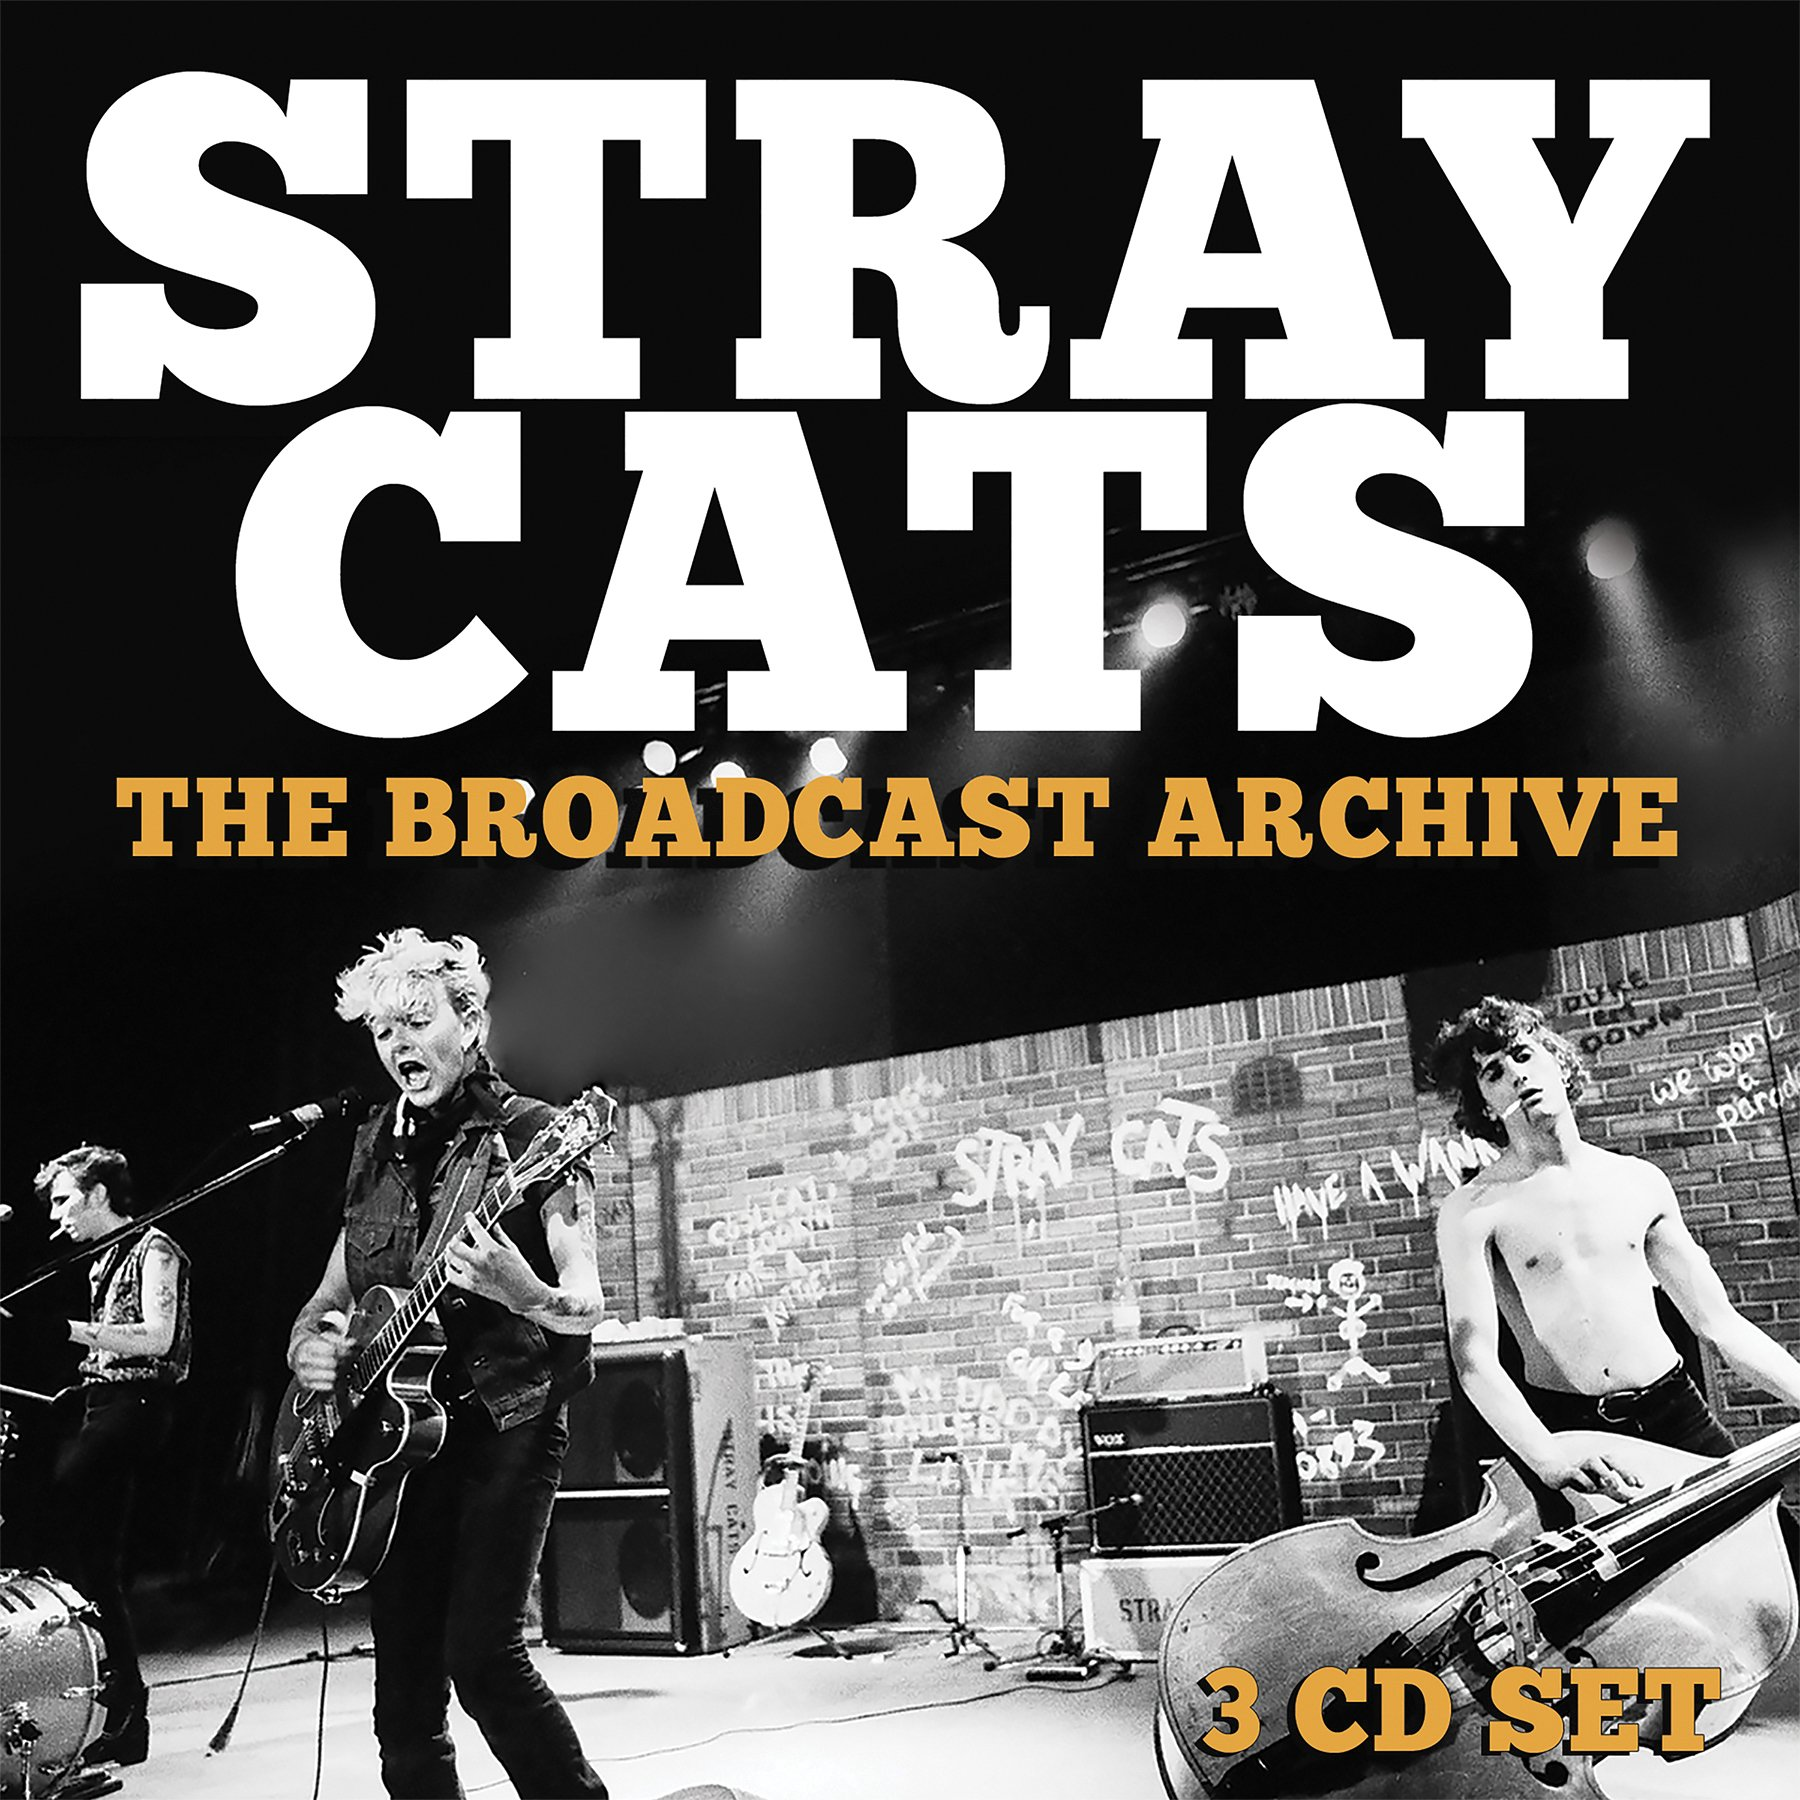 The Broadcast Archive (3CD Set)